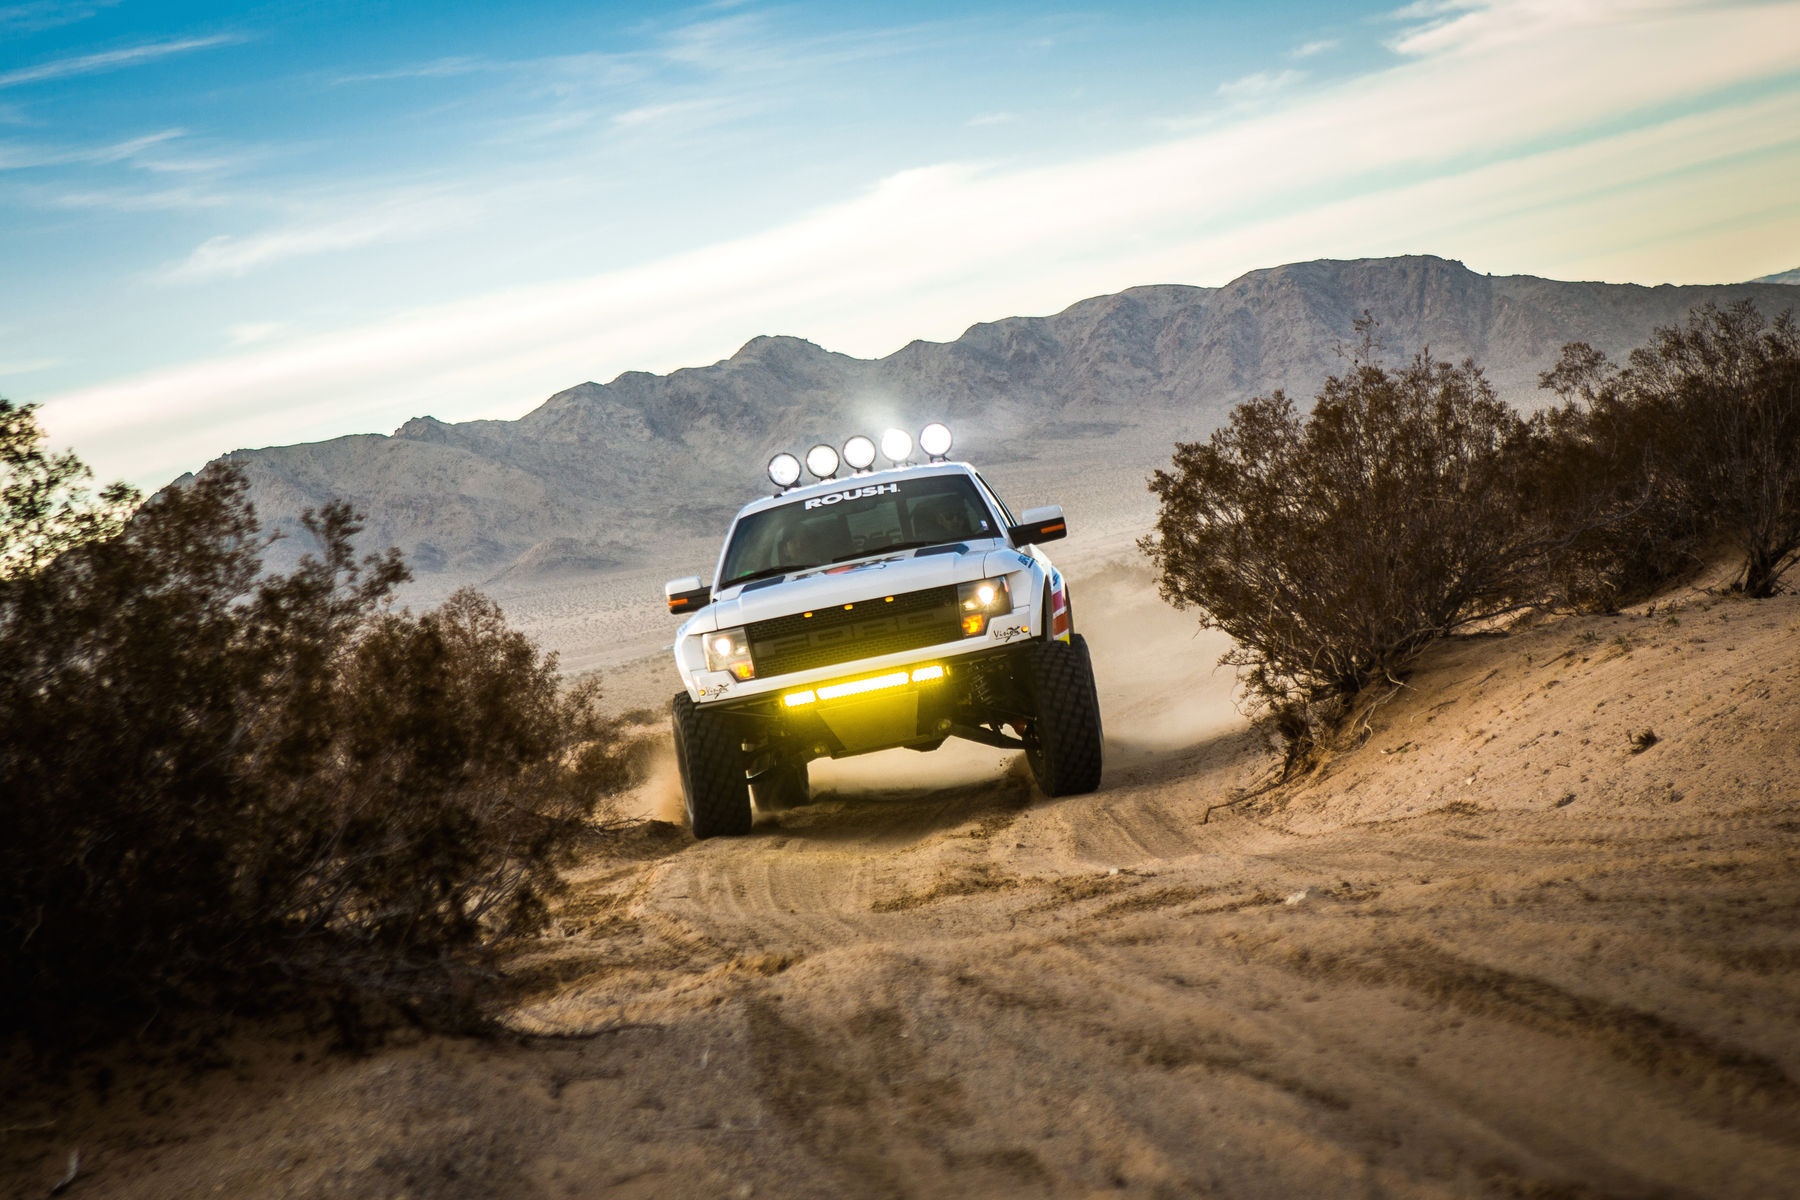 2013 Ford Raptor | Fox RPG Off-Road Raptor - Off-road Terrain